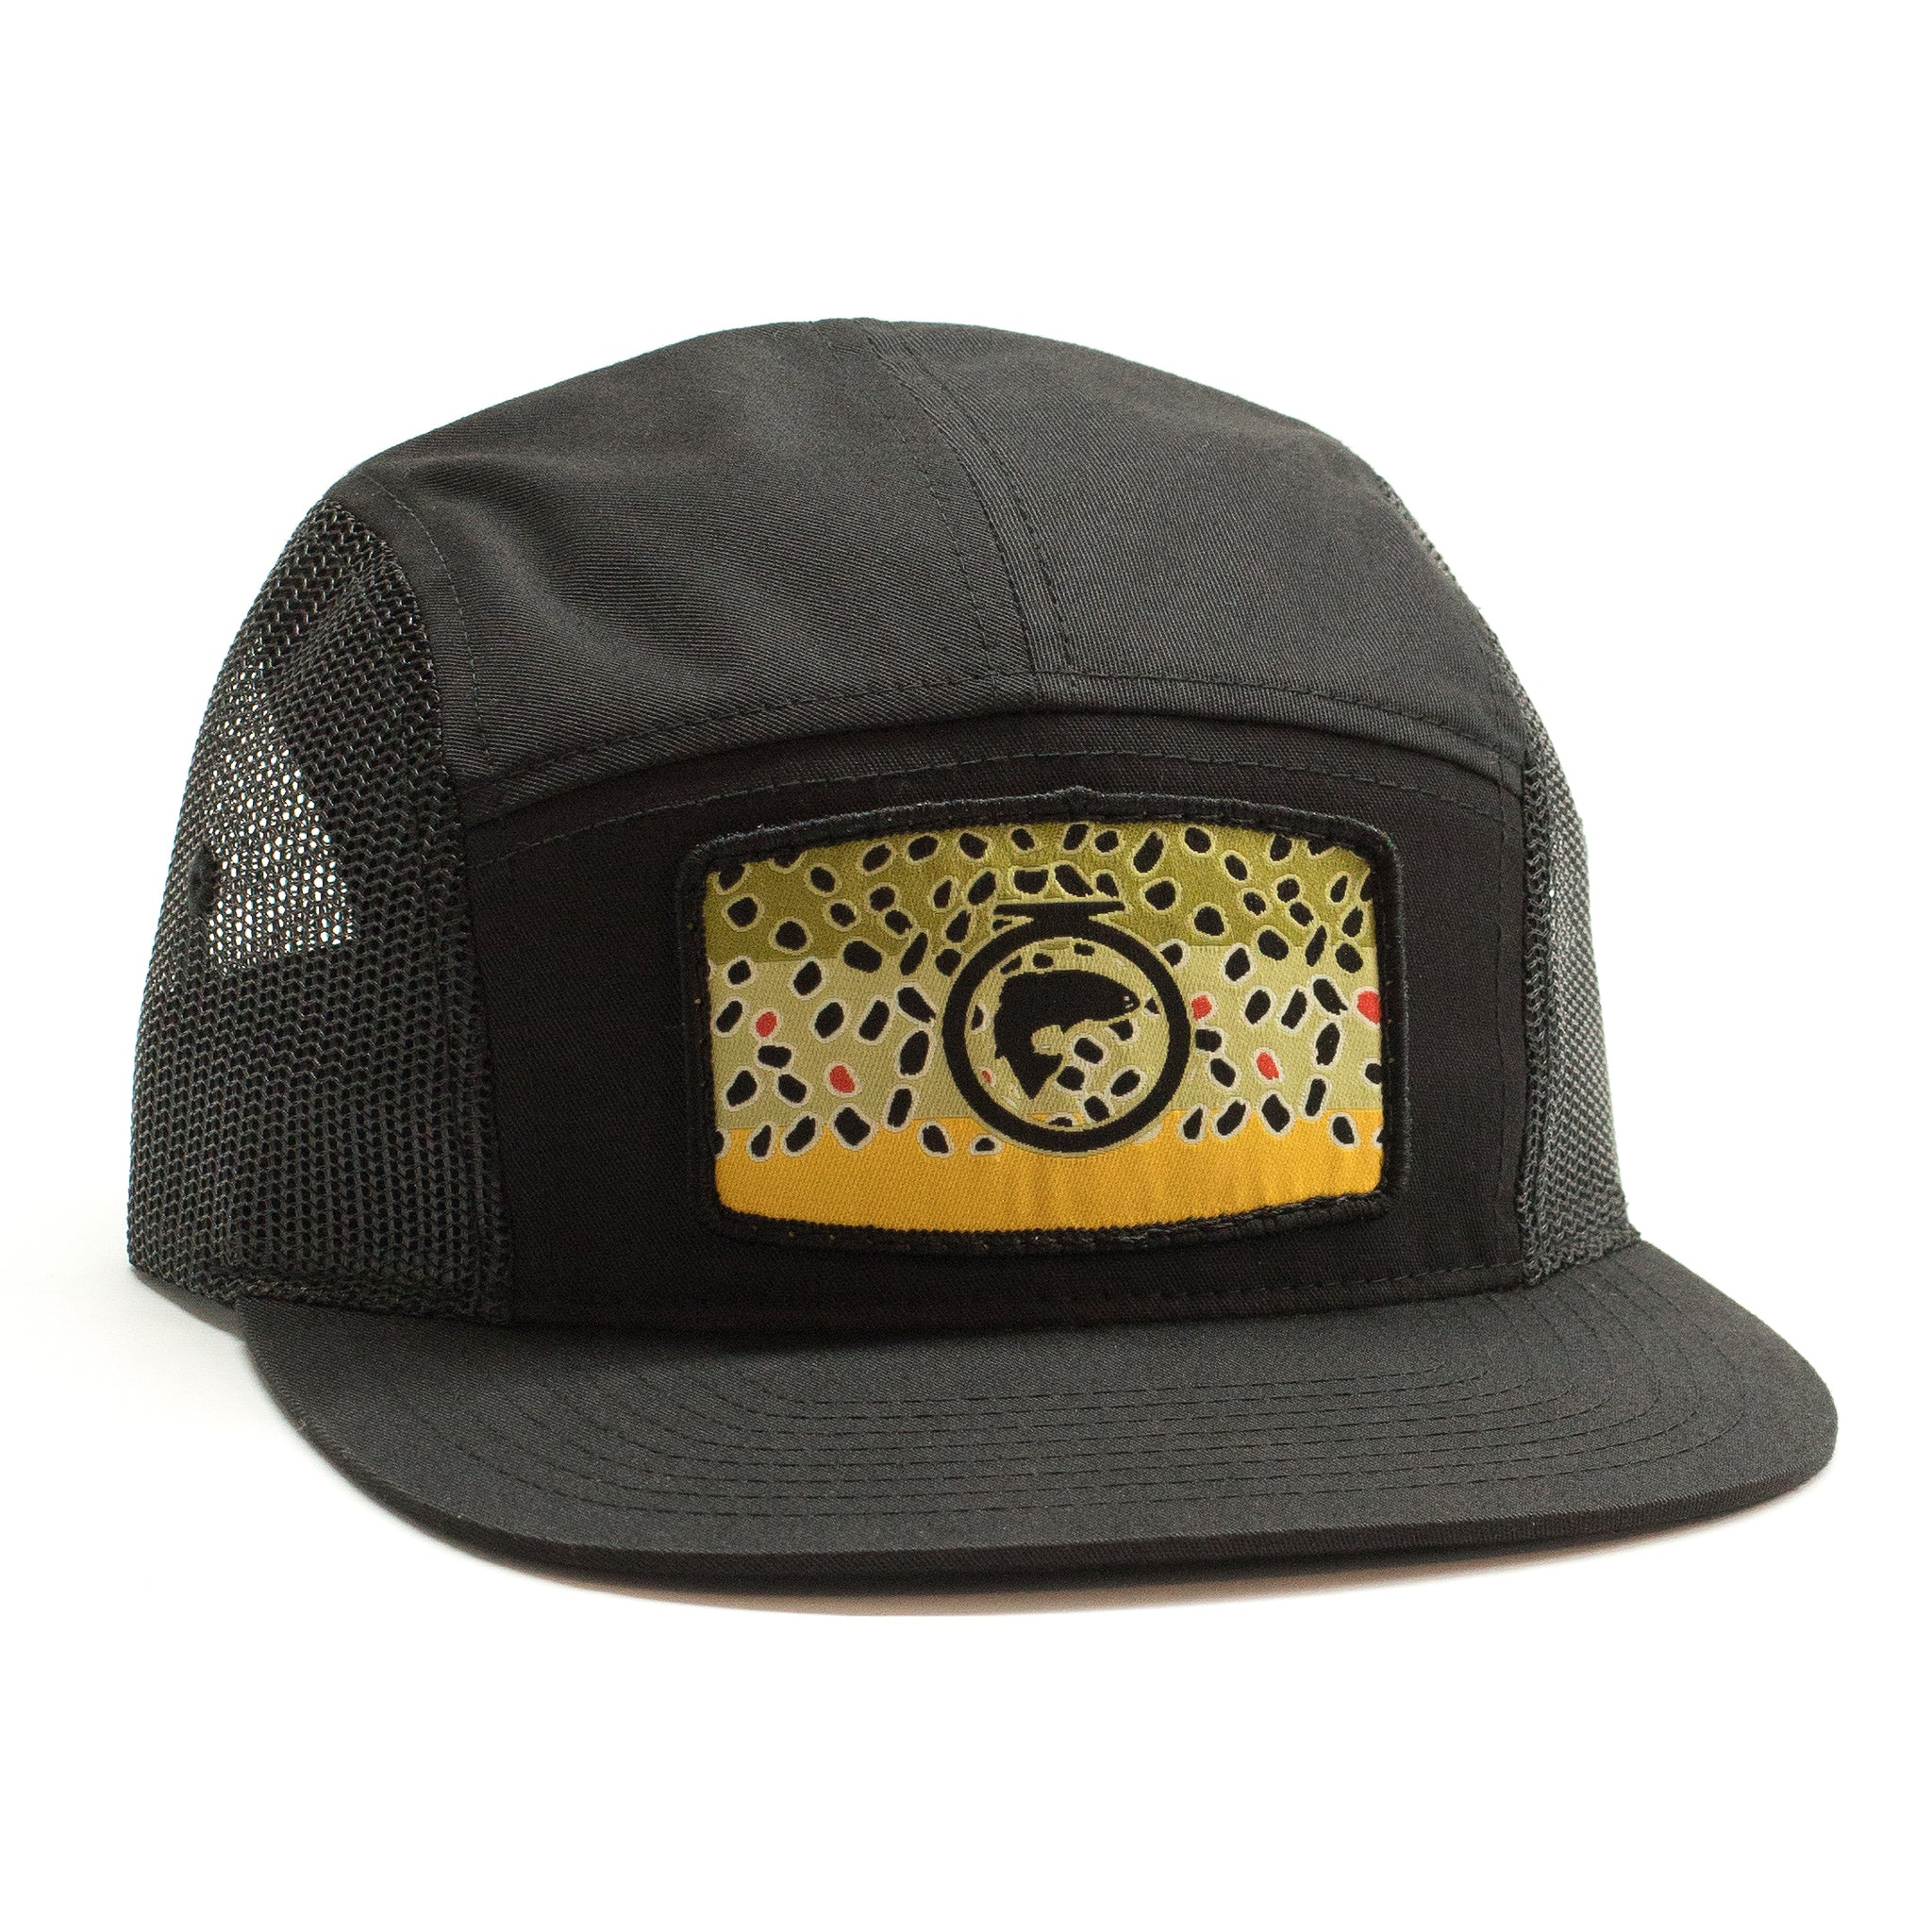 The Camp Hat - Brown Trout Patch